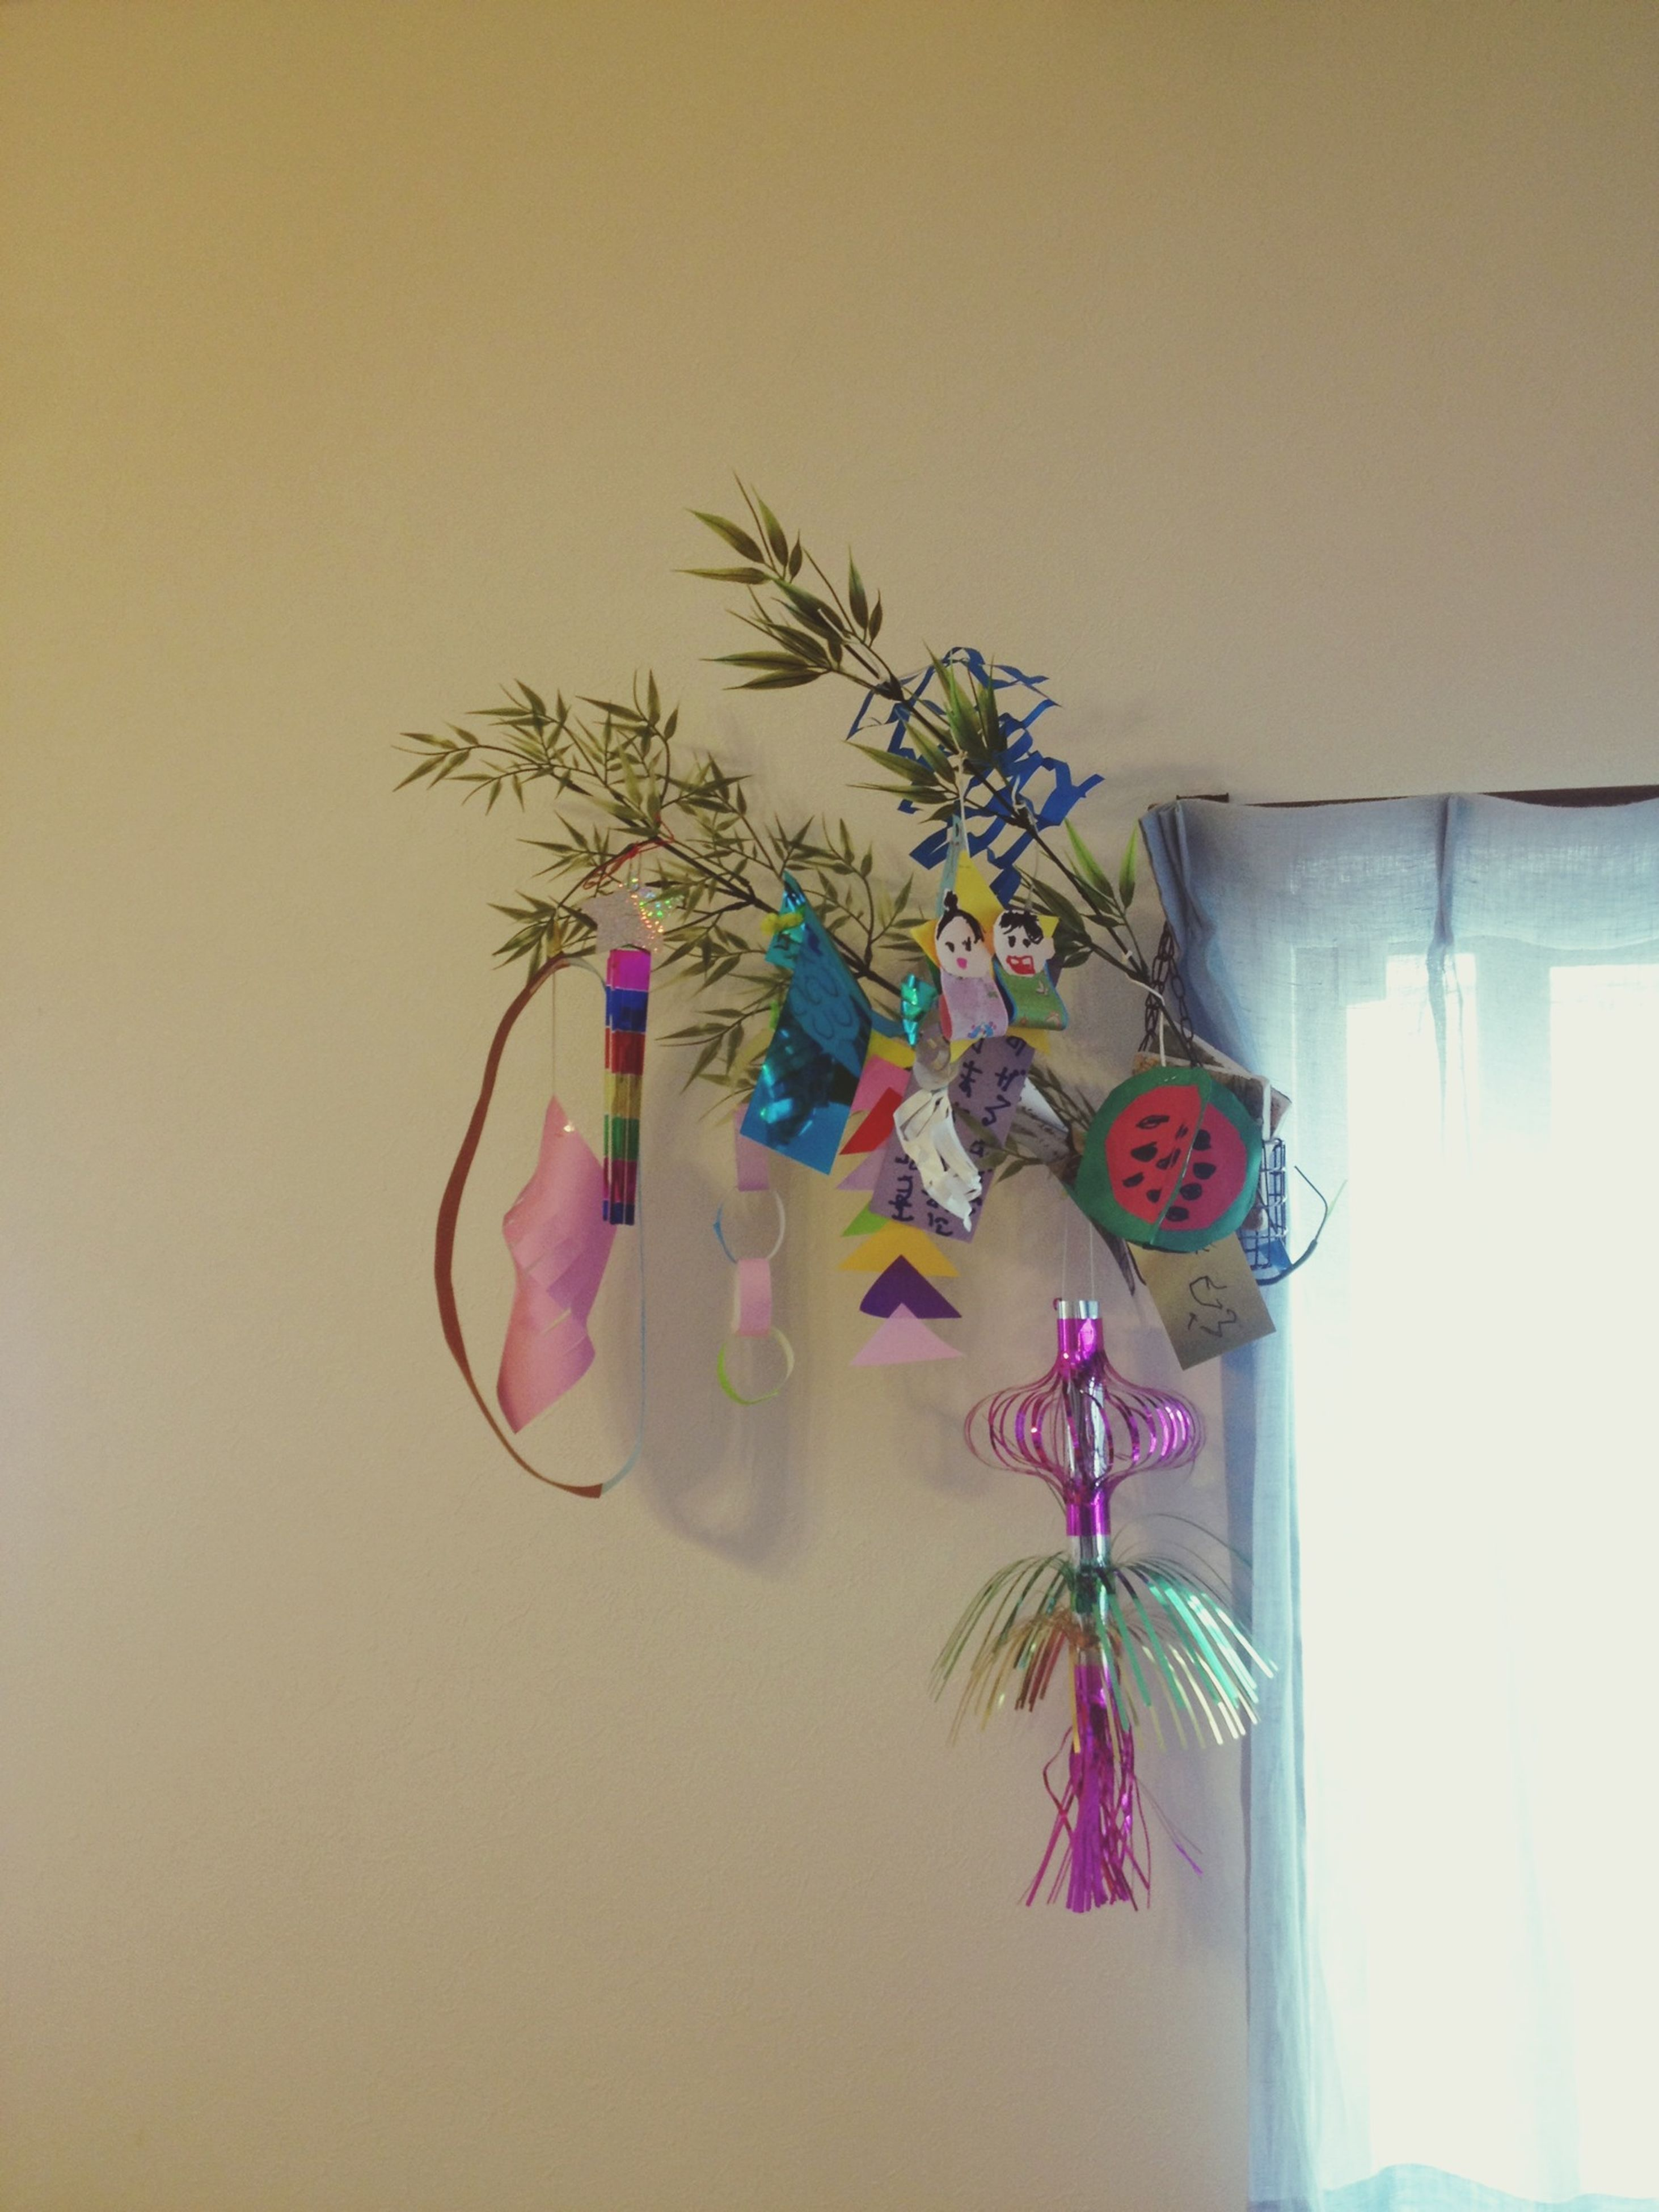 indoors, wall - building feature, decoration, wall, flower, home interior, vase, table, hanging, potted plant, multi colored, copy space, no people, still life, close-up, shadow, creativity, built structure, art and craft, plant